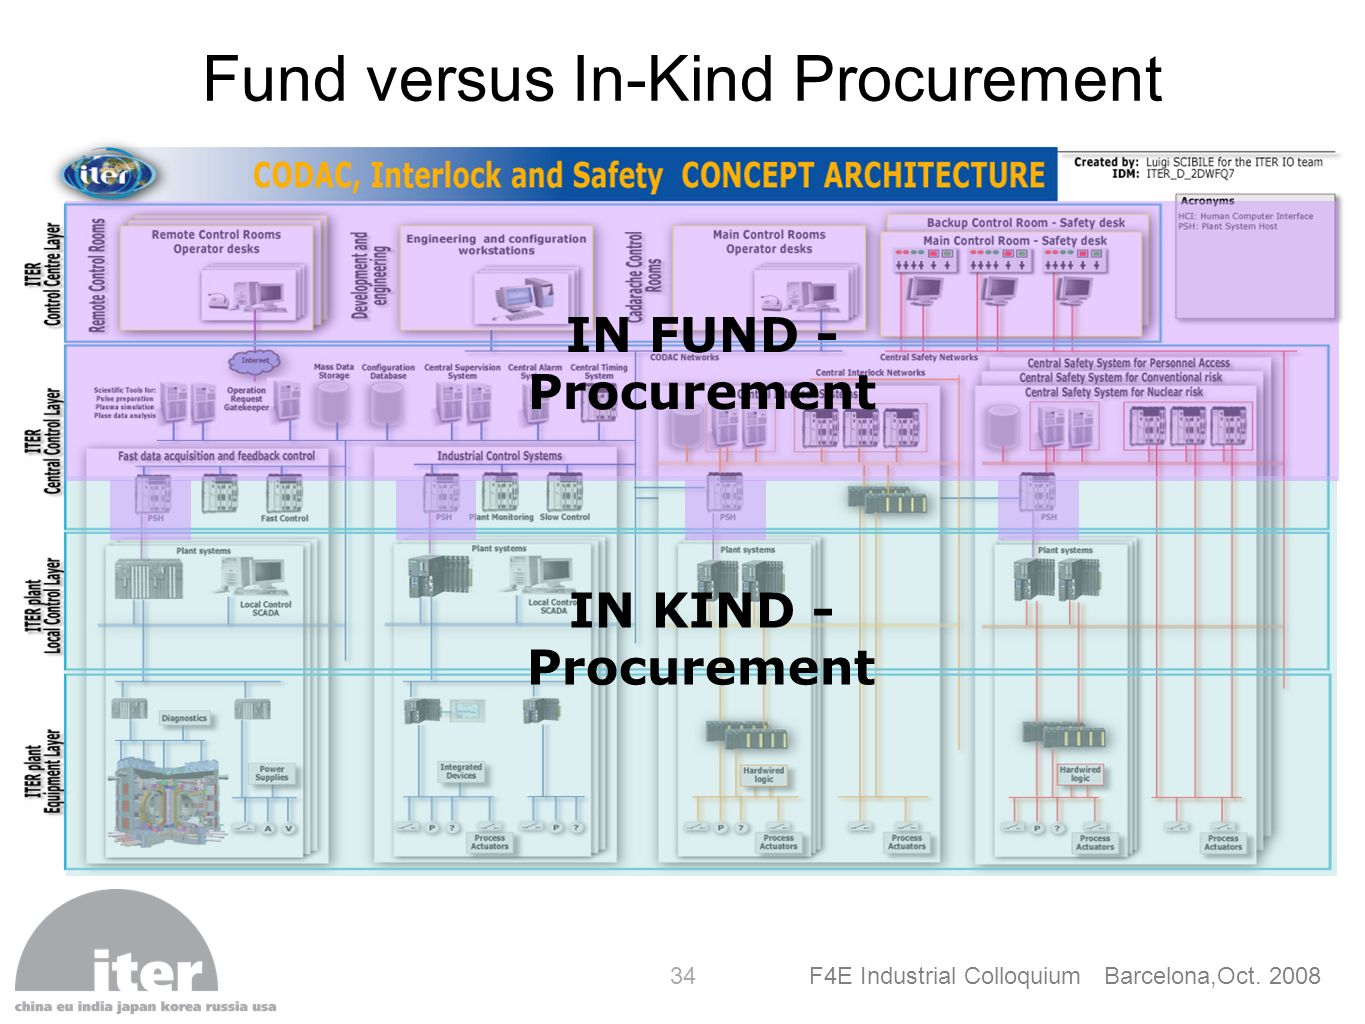 Fund versus In-Kind Procurement